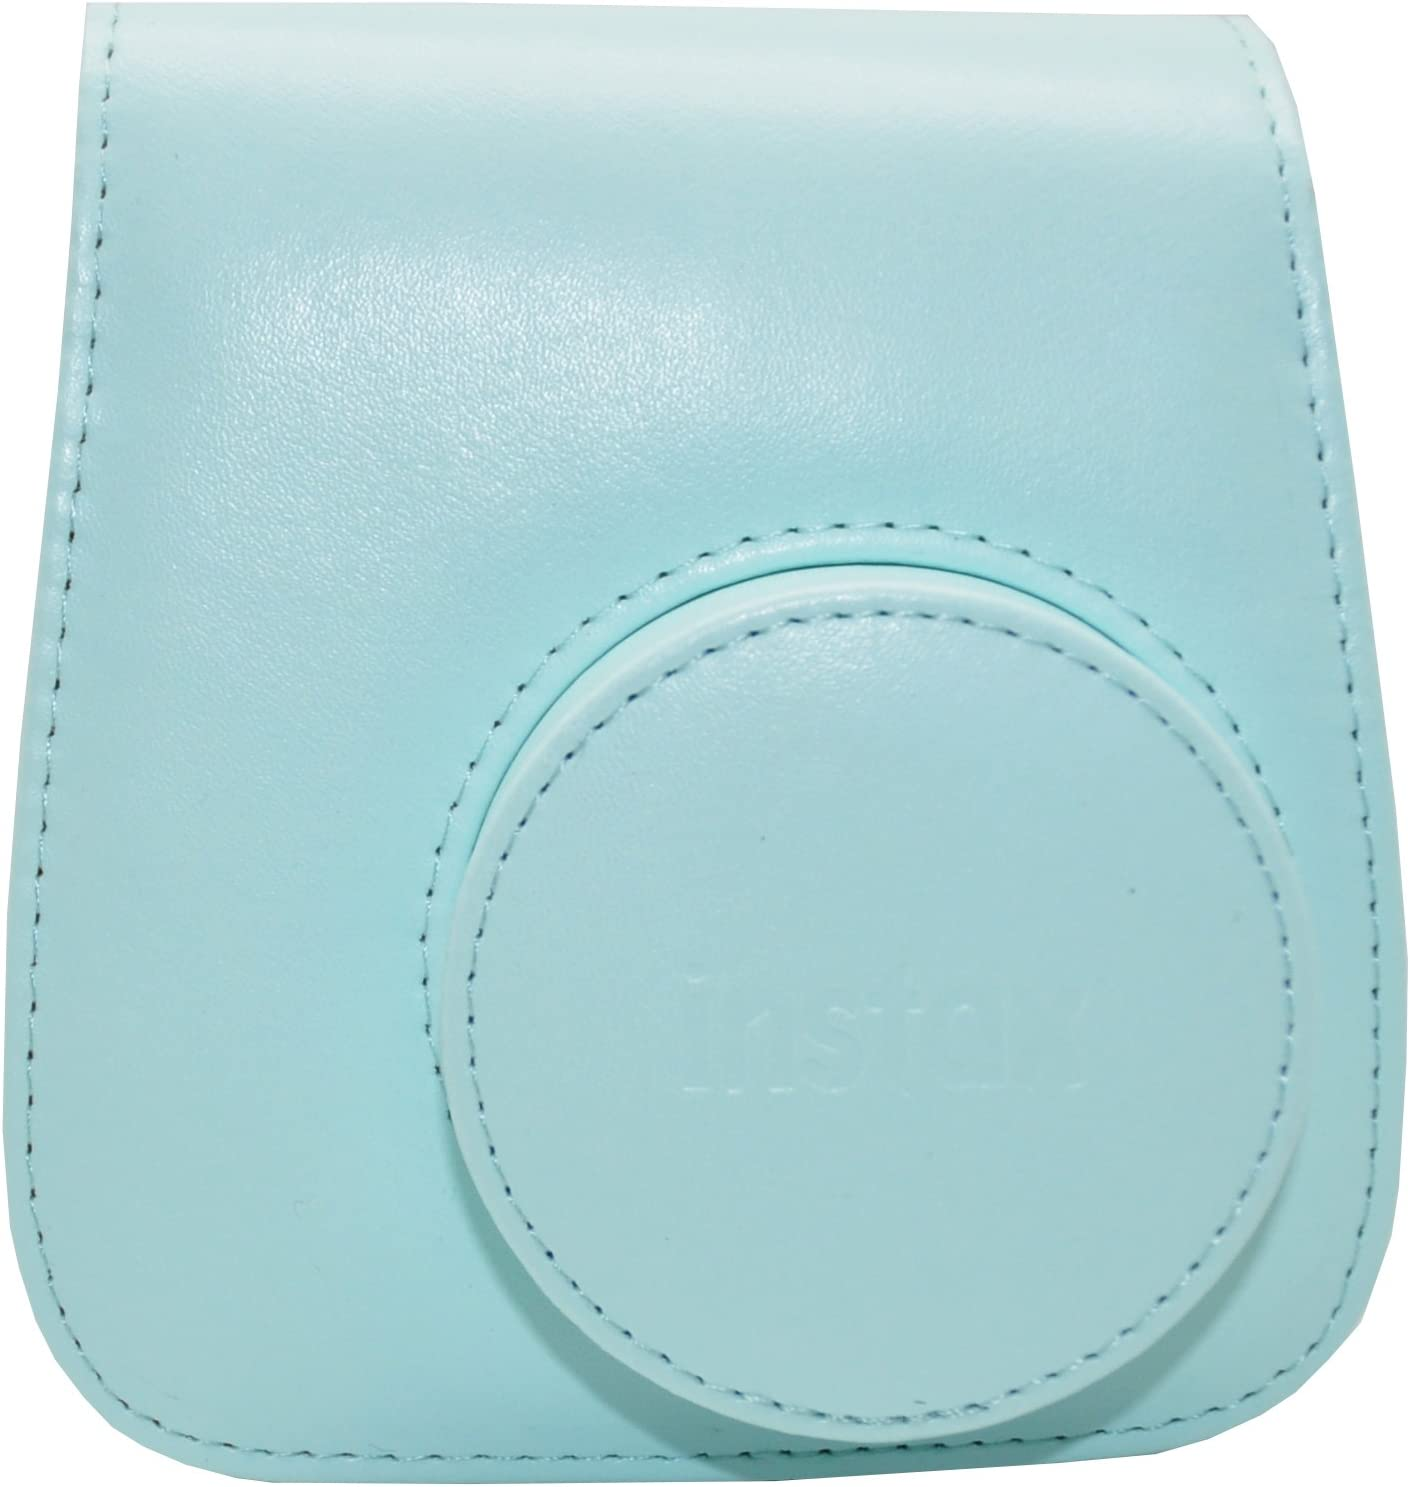 Fujifilm Instax Groovy Camera Case - Ice Blue